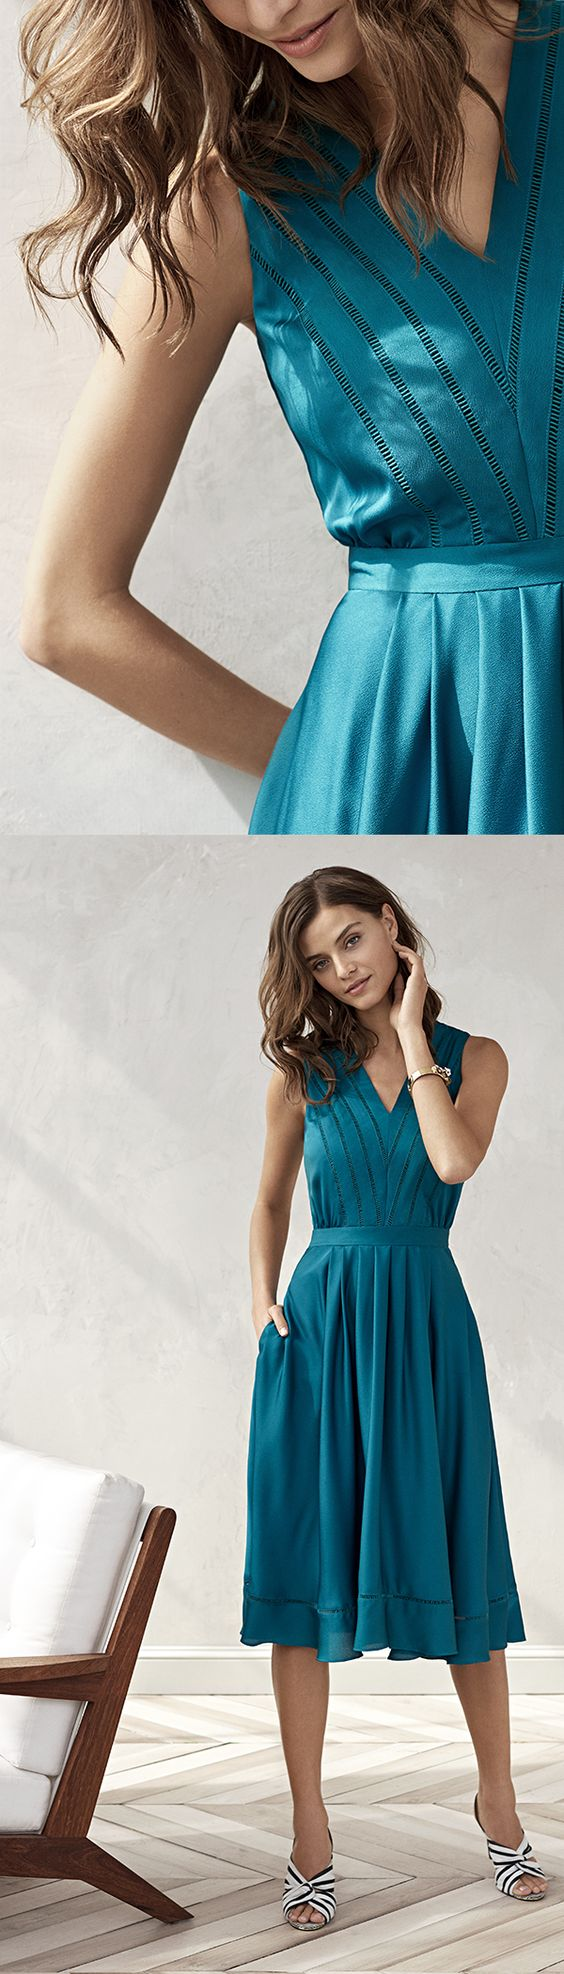 Our sleek teal dress will take you from a garden party to a night on the town with easy elegance | Banana Republic